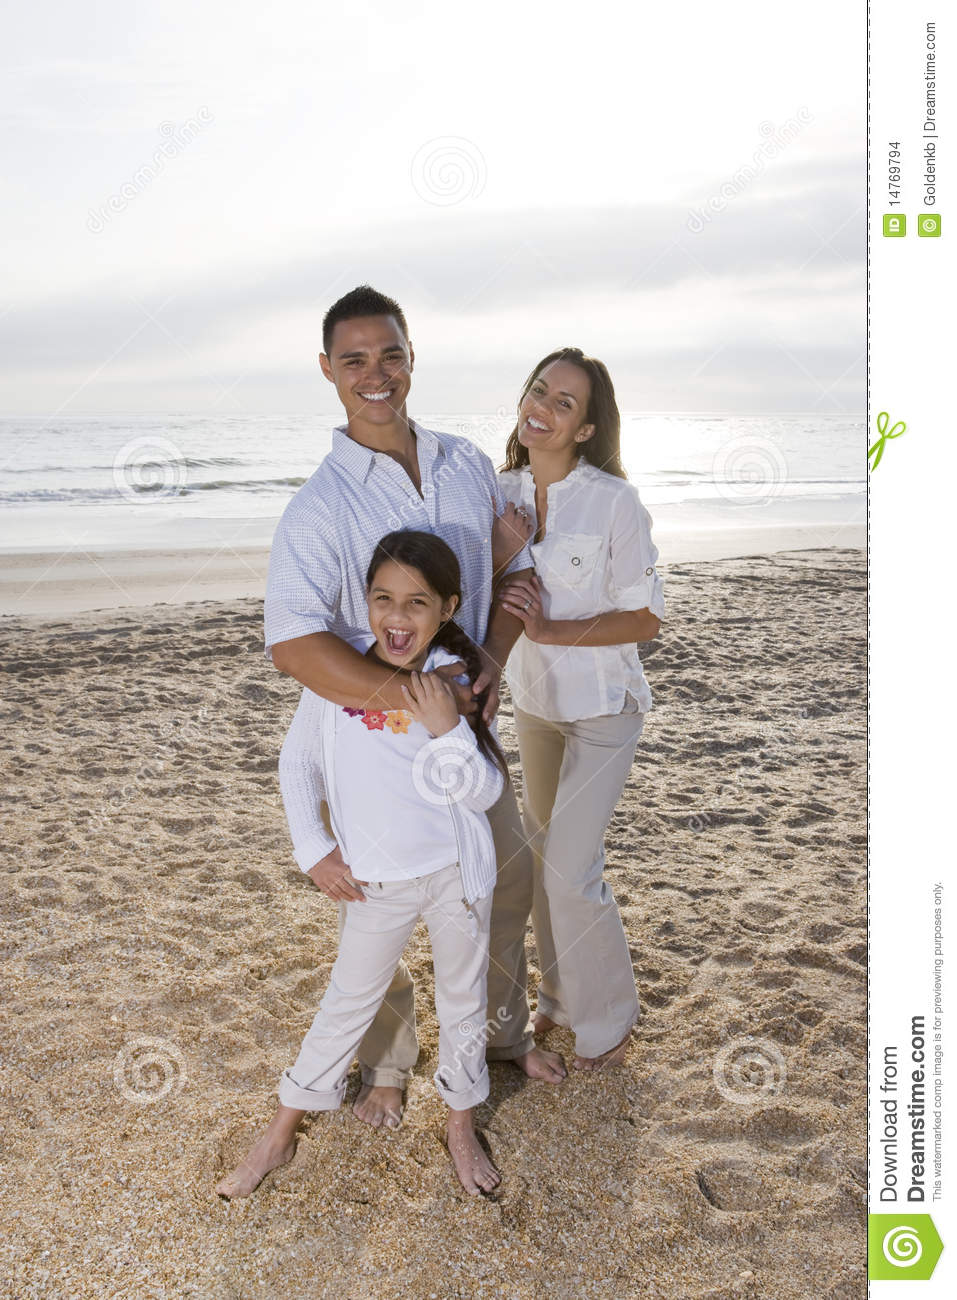 beach single hispanic girls Download latina girl stock photos affordable and search from millions of royalty free images, photos and vectors.